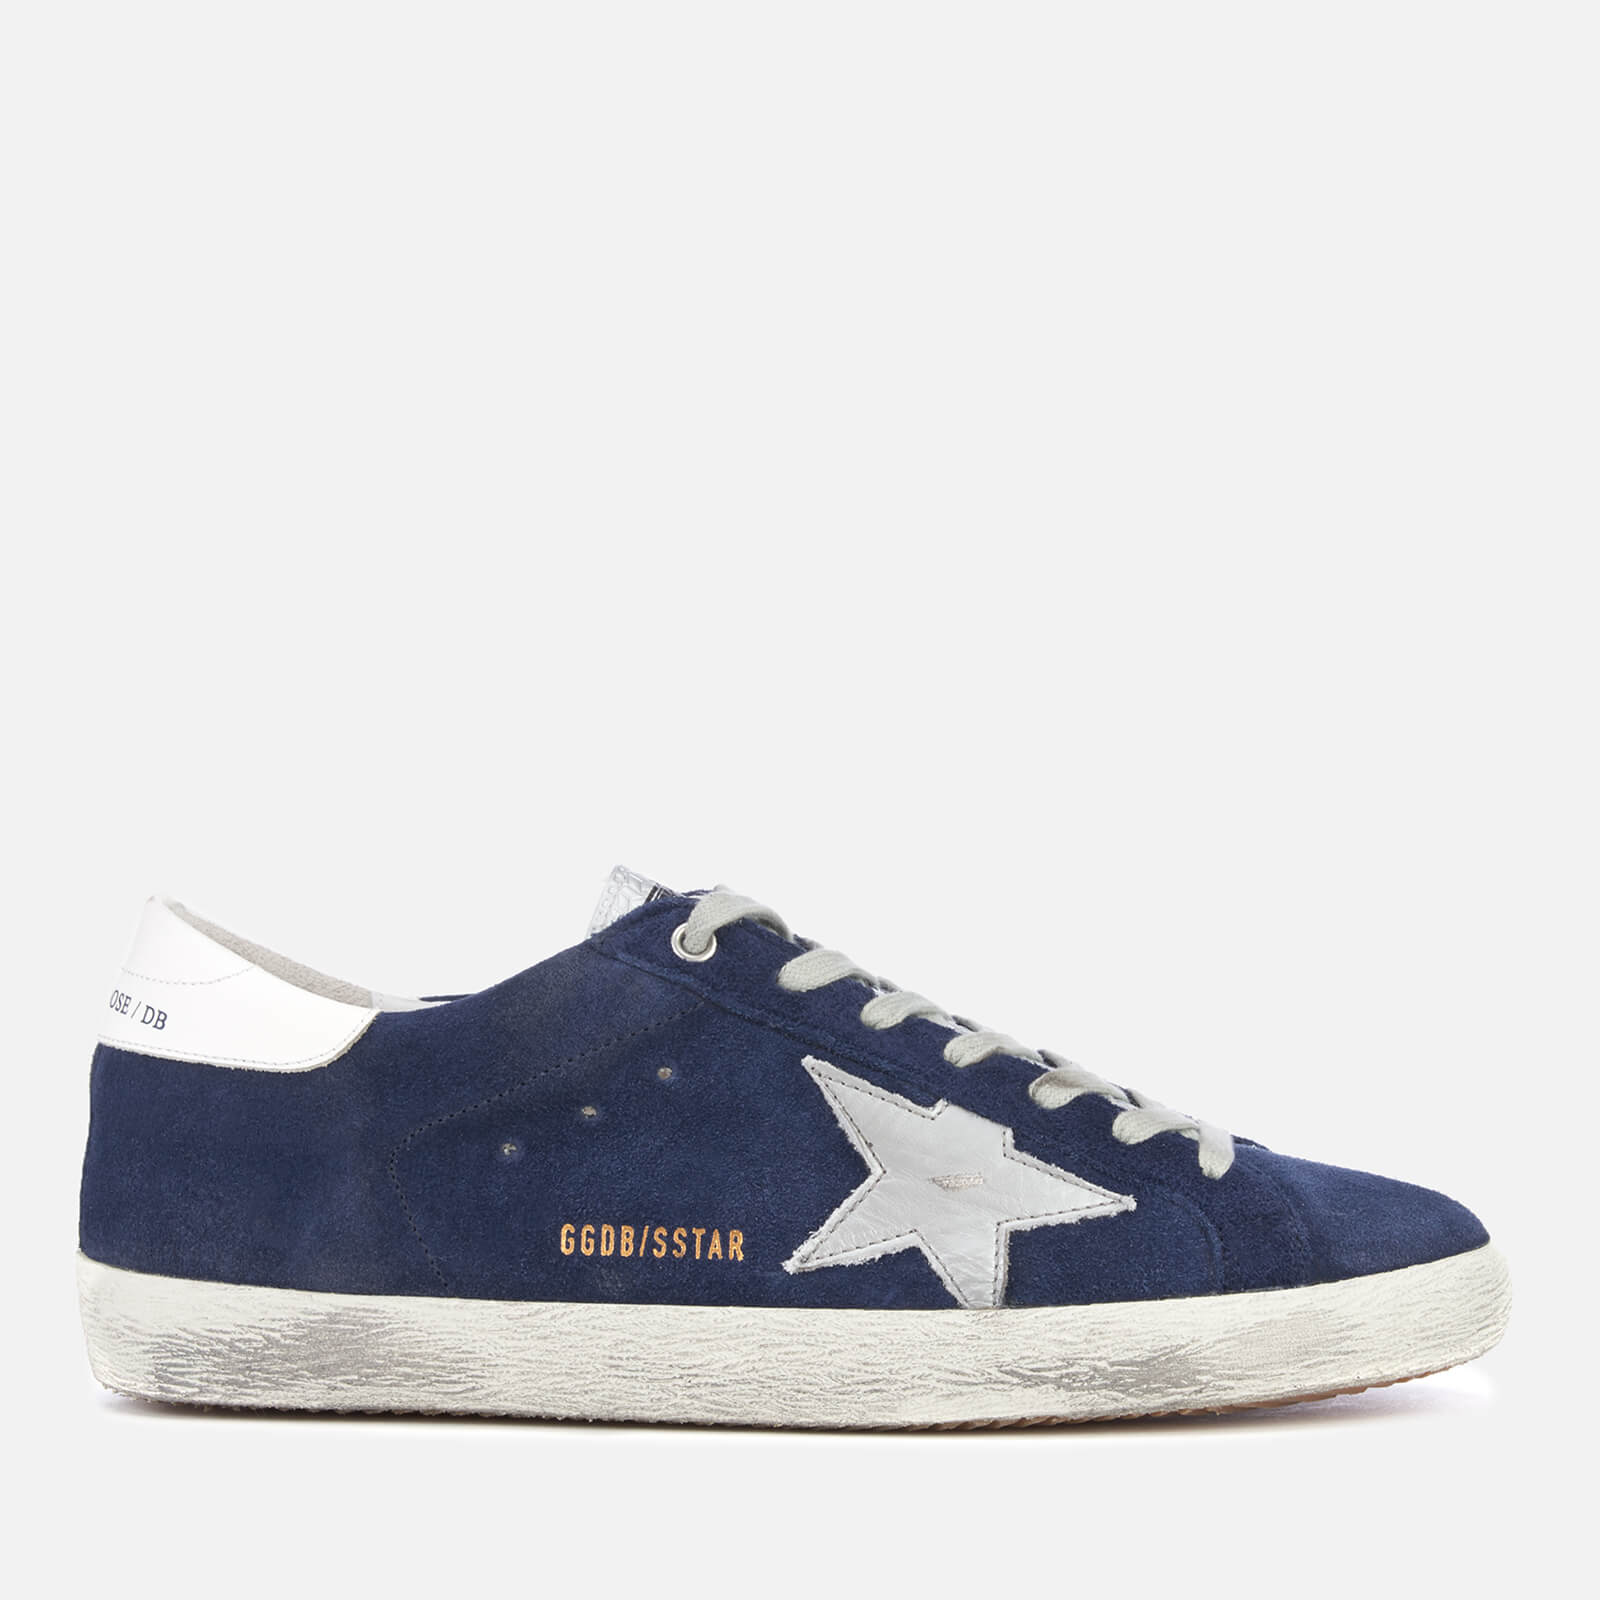 8834248fb7d2 Golden Goose Deluxe Brand Men s Superstar Sneakers - Blue Suede Silver -  Free UK Delivery over £50